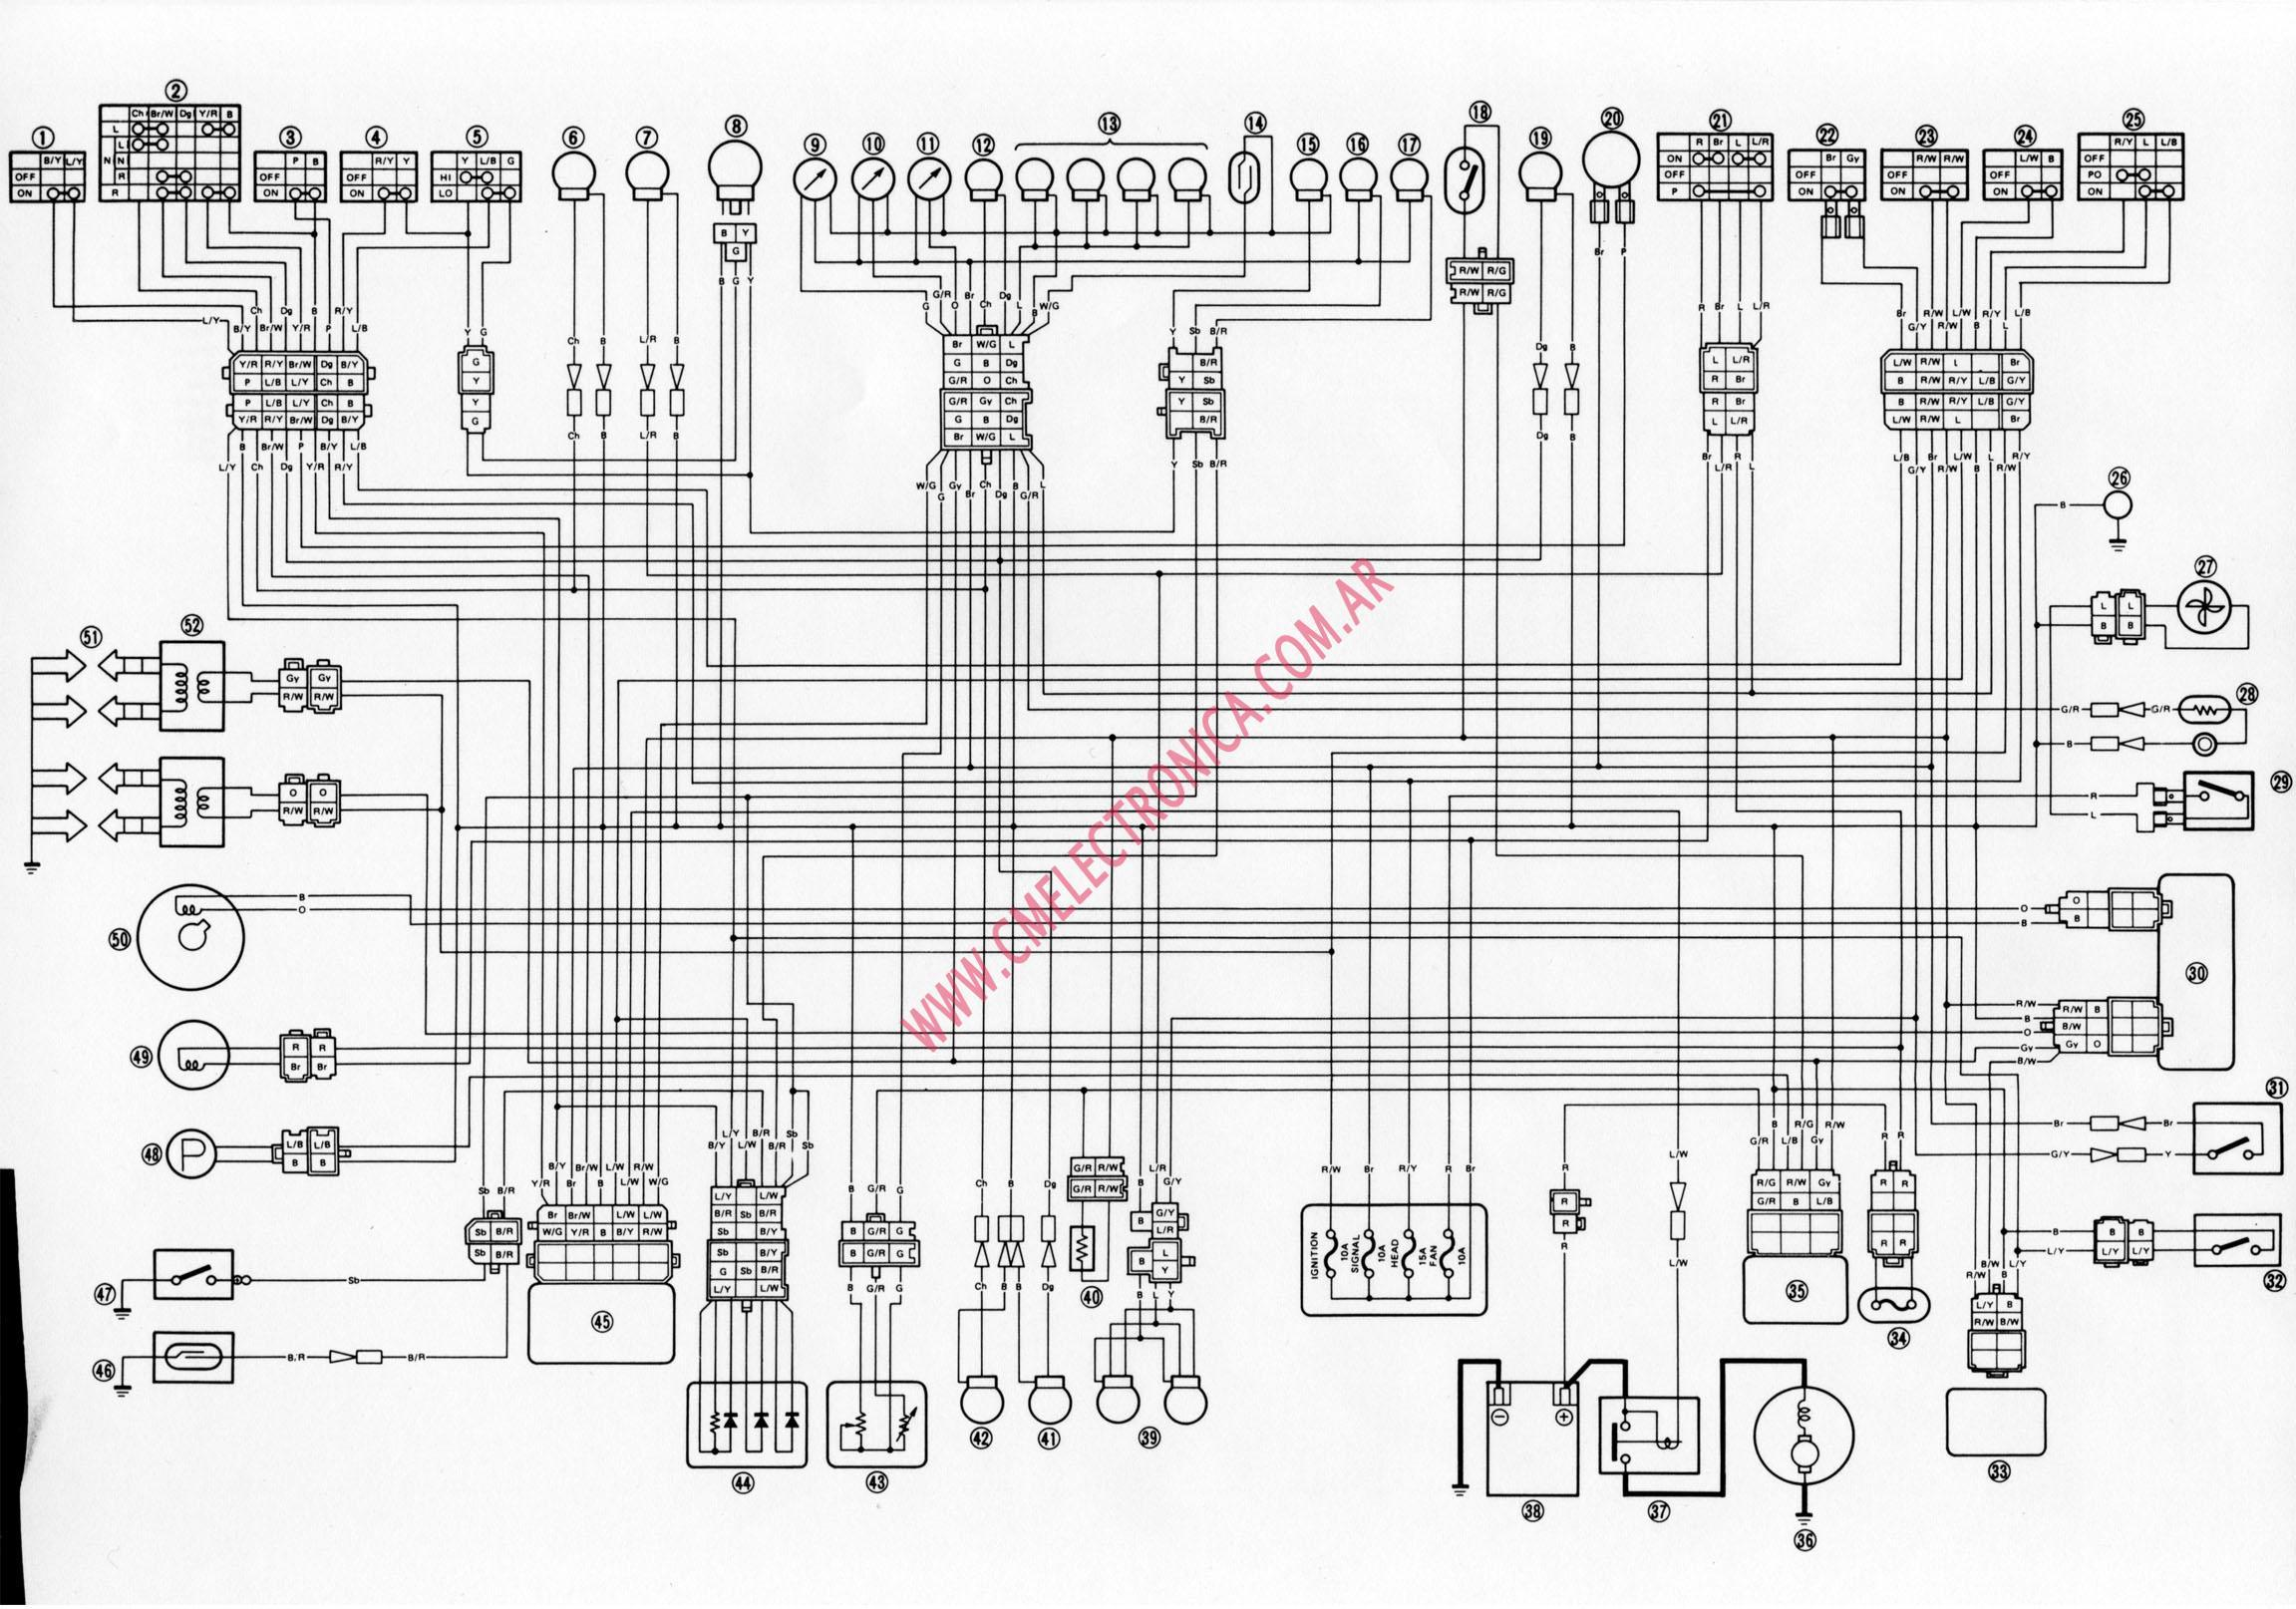 yamaha fz 600 wiring diagram - wiring diagram pace-colab -  pace-colab.pennyapp.it  pennyapp.it